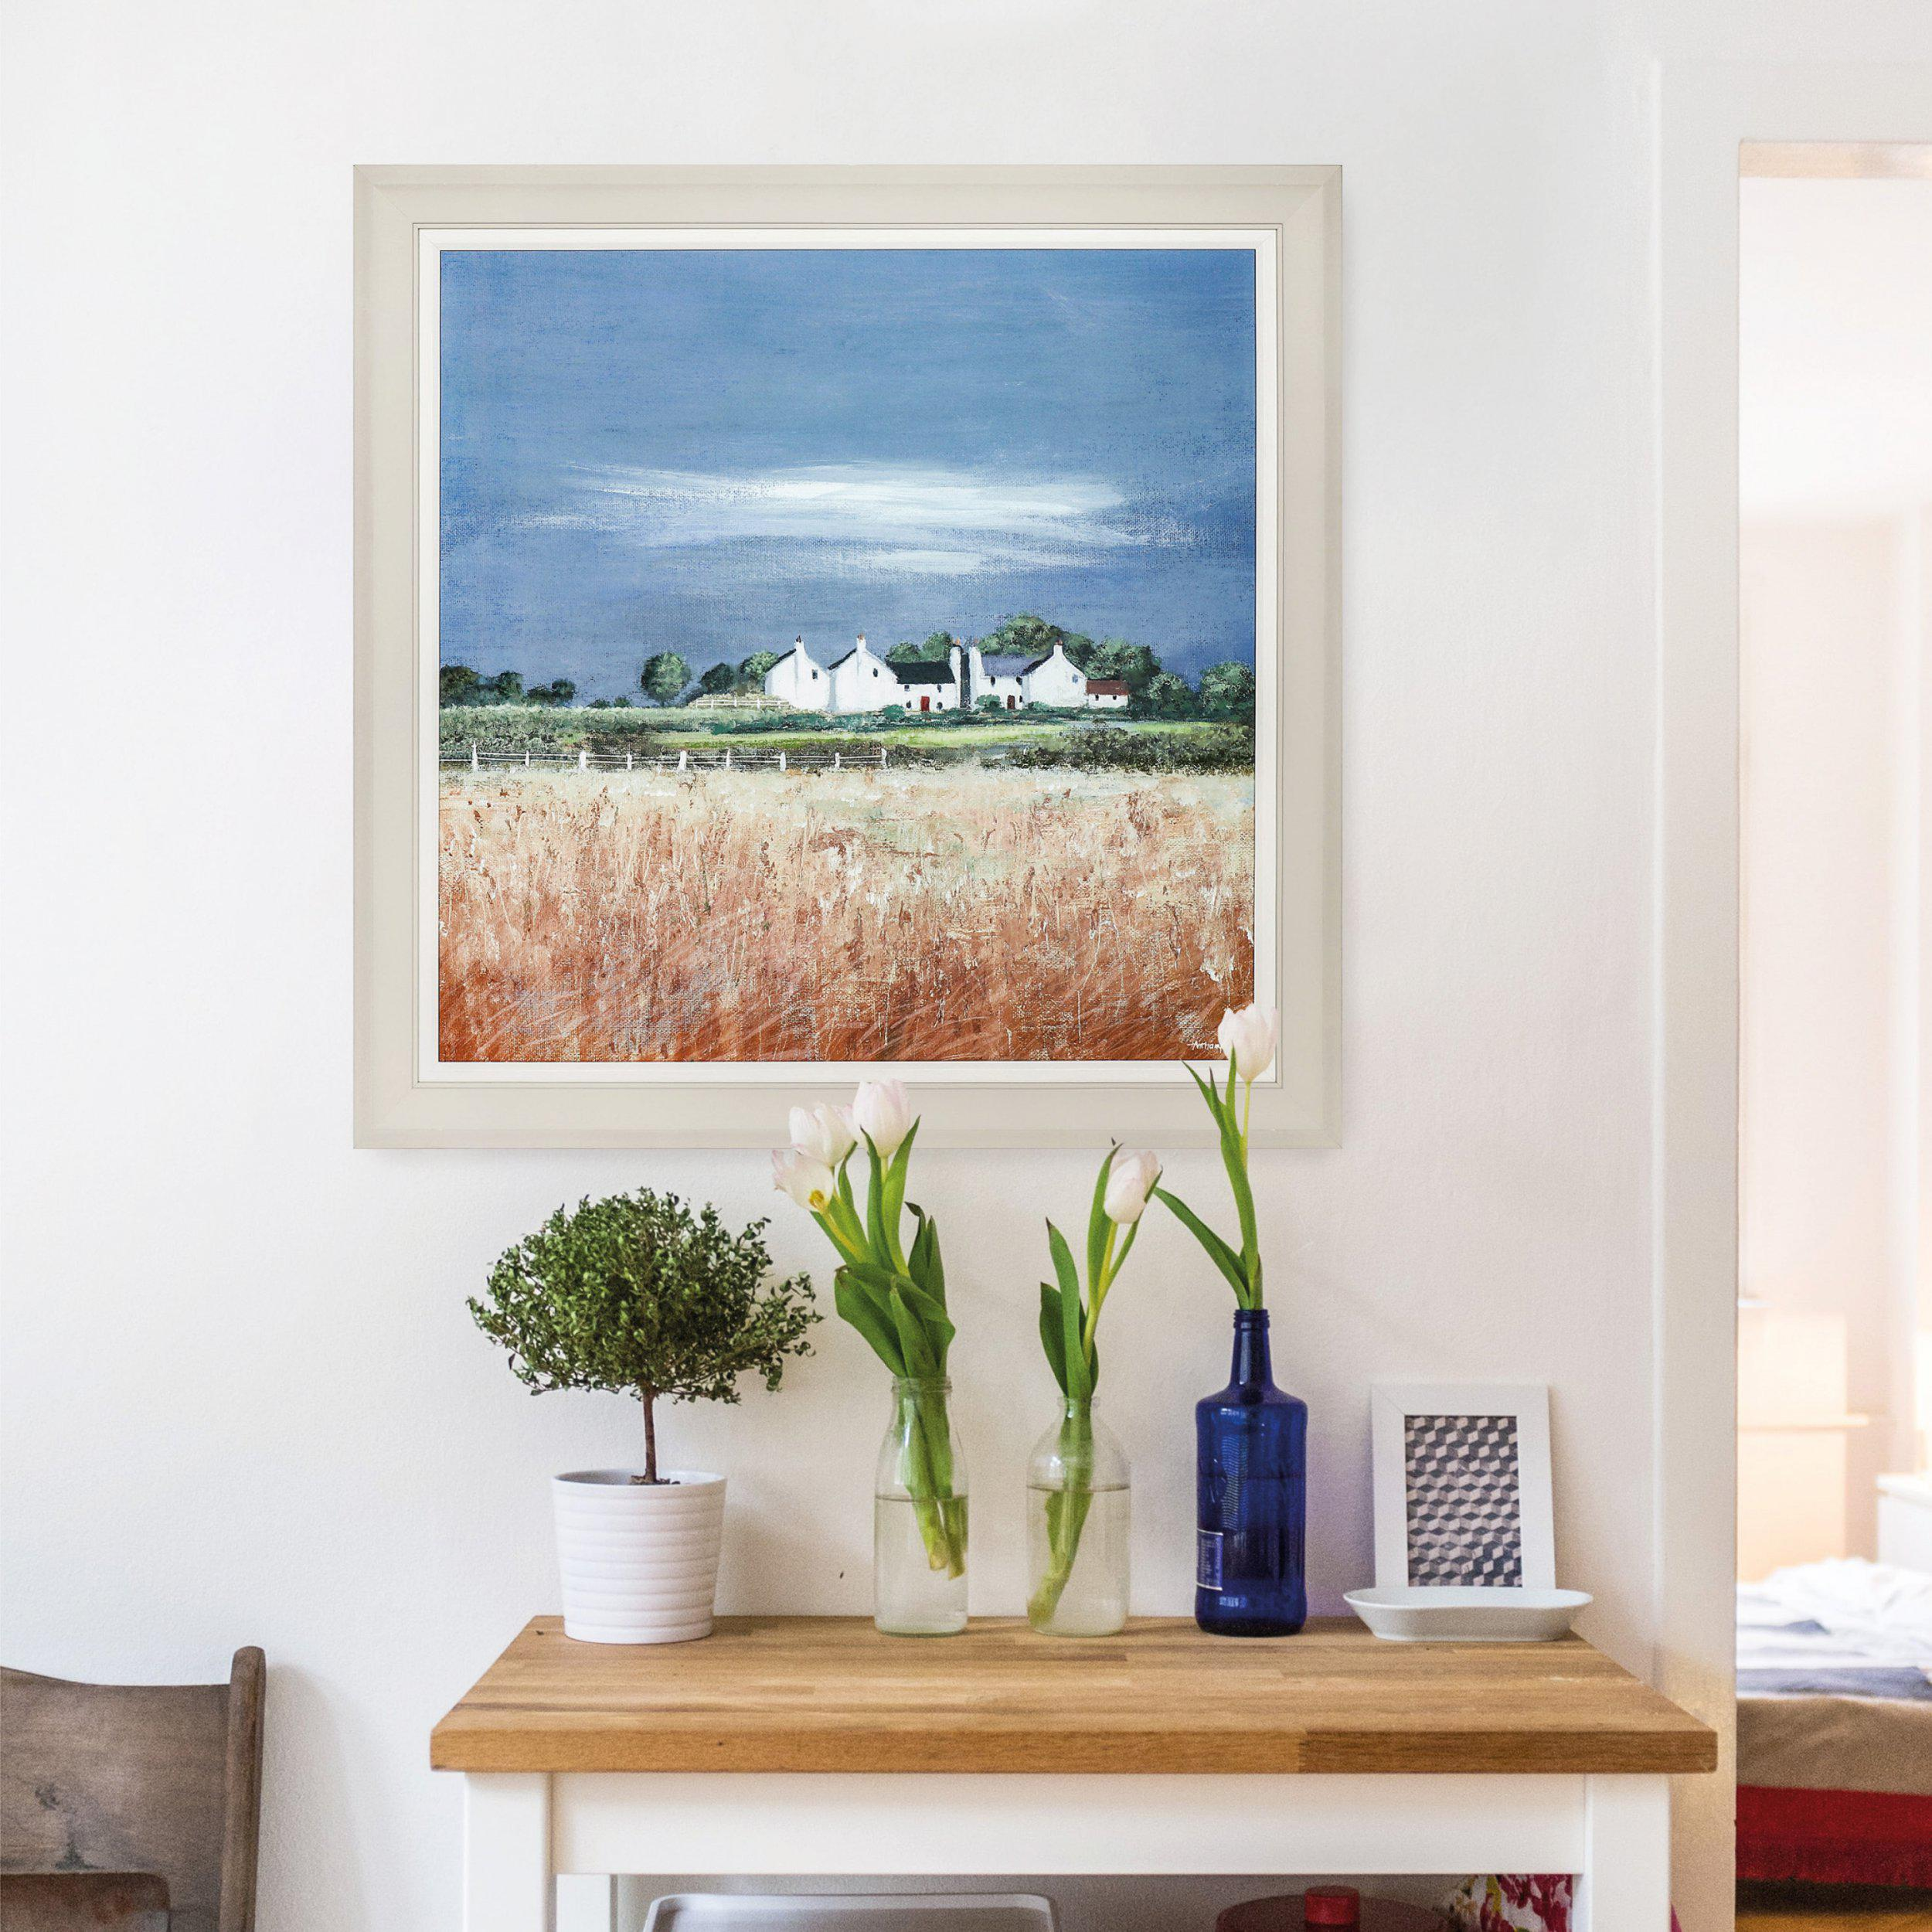 Fields Of Gold Painting by Artist Anthony Waller - Framed Print For Sale - Room Display